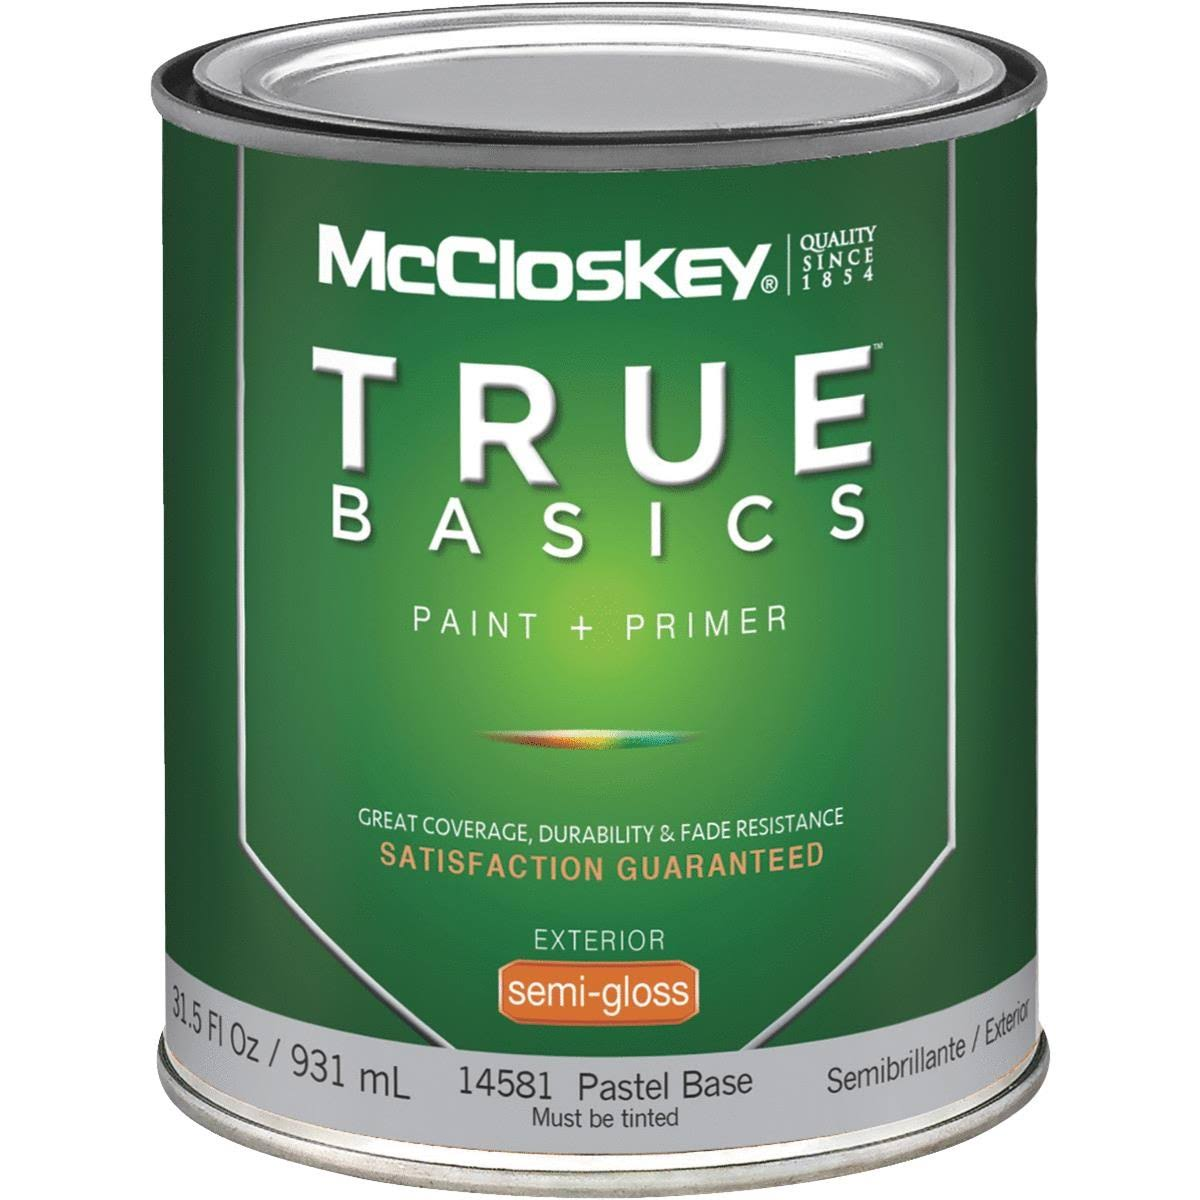 McCloskey True Basics Paint & Primer Exterior Semi-Gloss House Paint - 14581 Pastel Base, 931ml